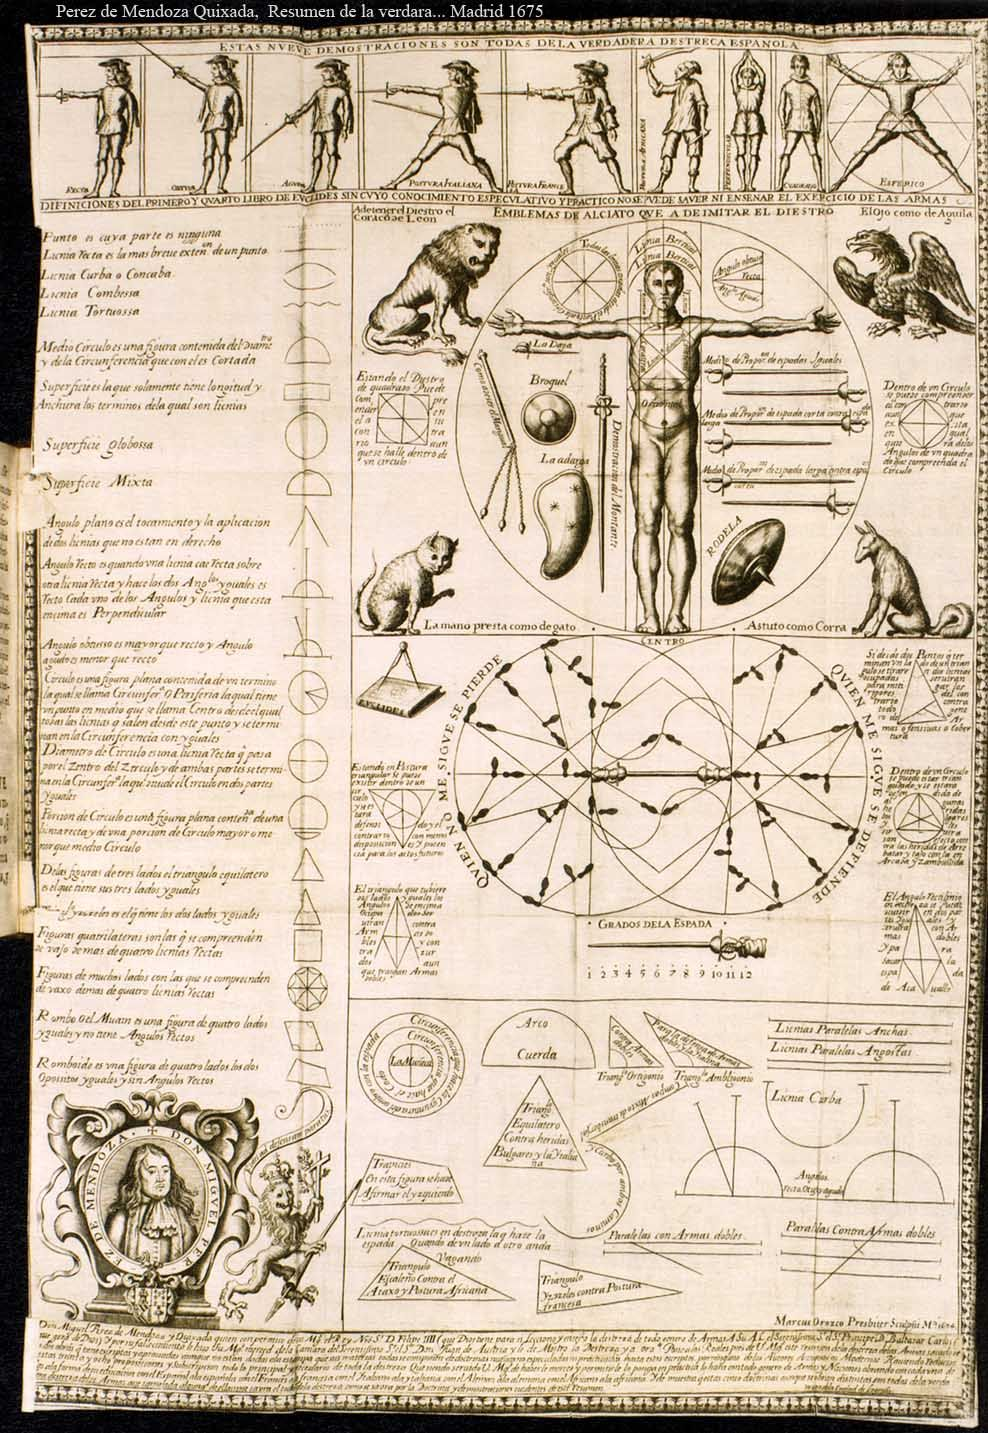 QUIXADA, Resumen de la verdara, 1675, all on one plate